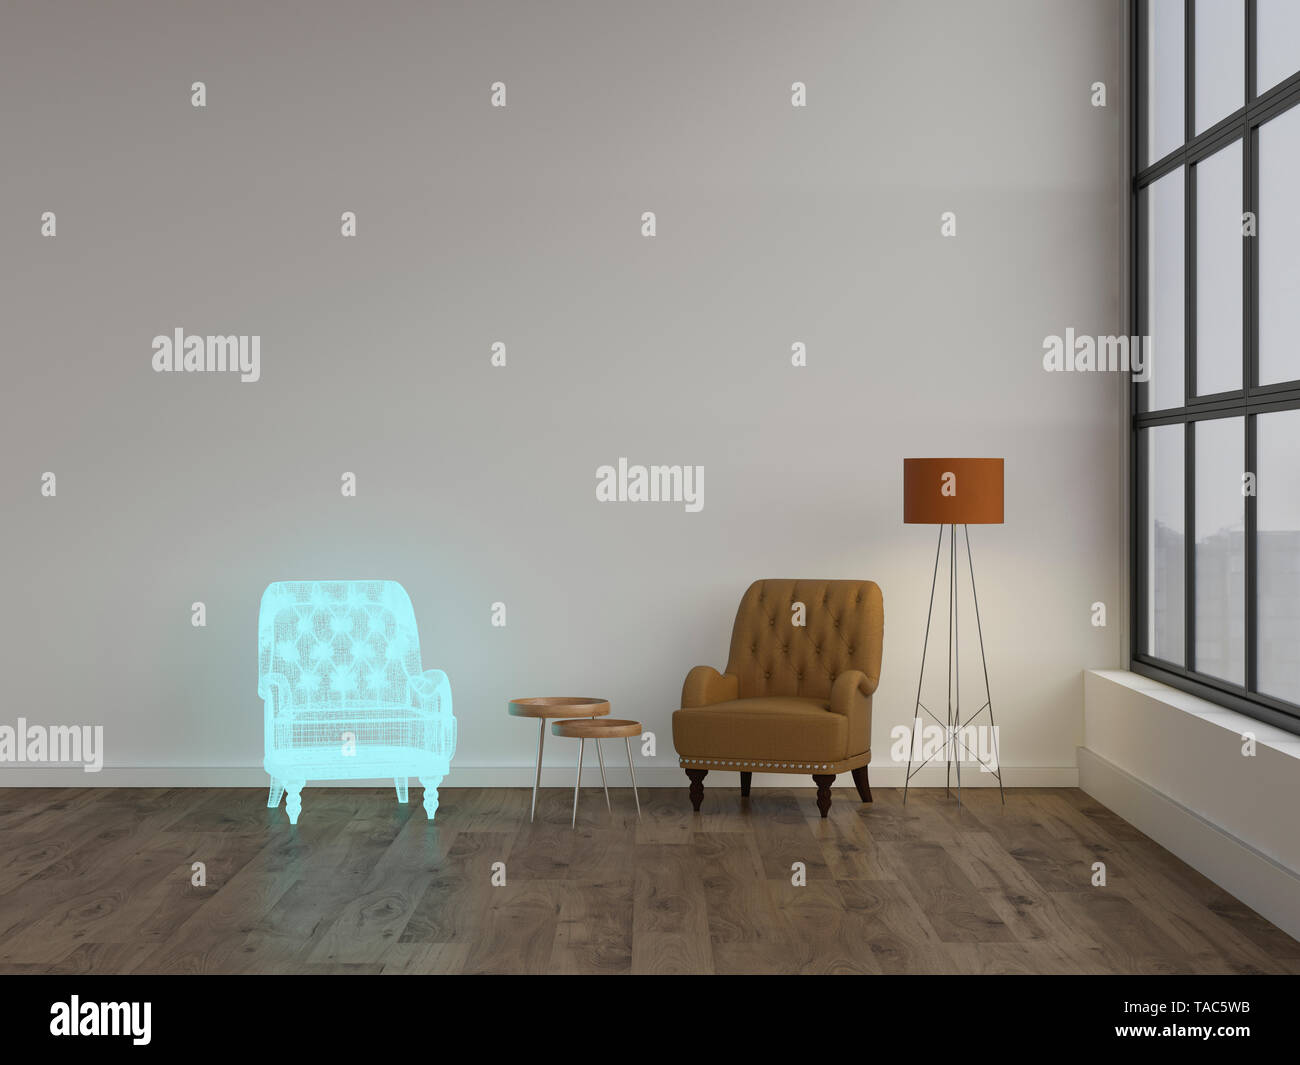 3d Rendering Hologram Of Armchair In Modern Living Room With